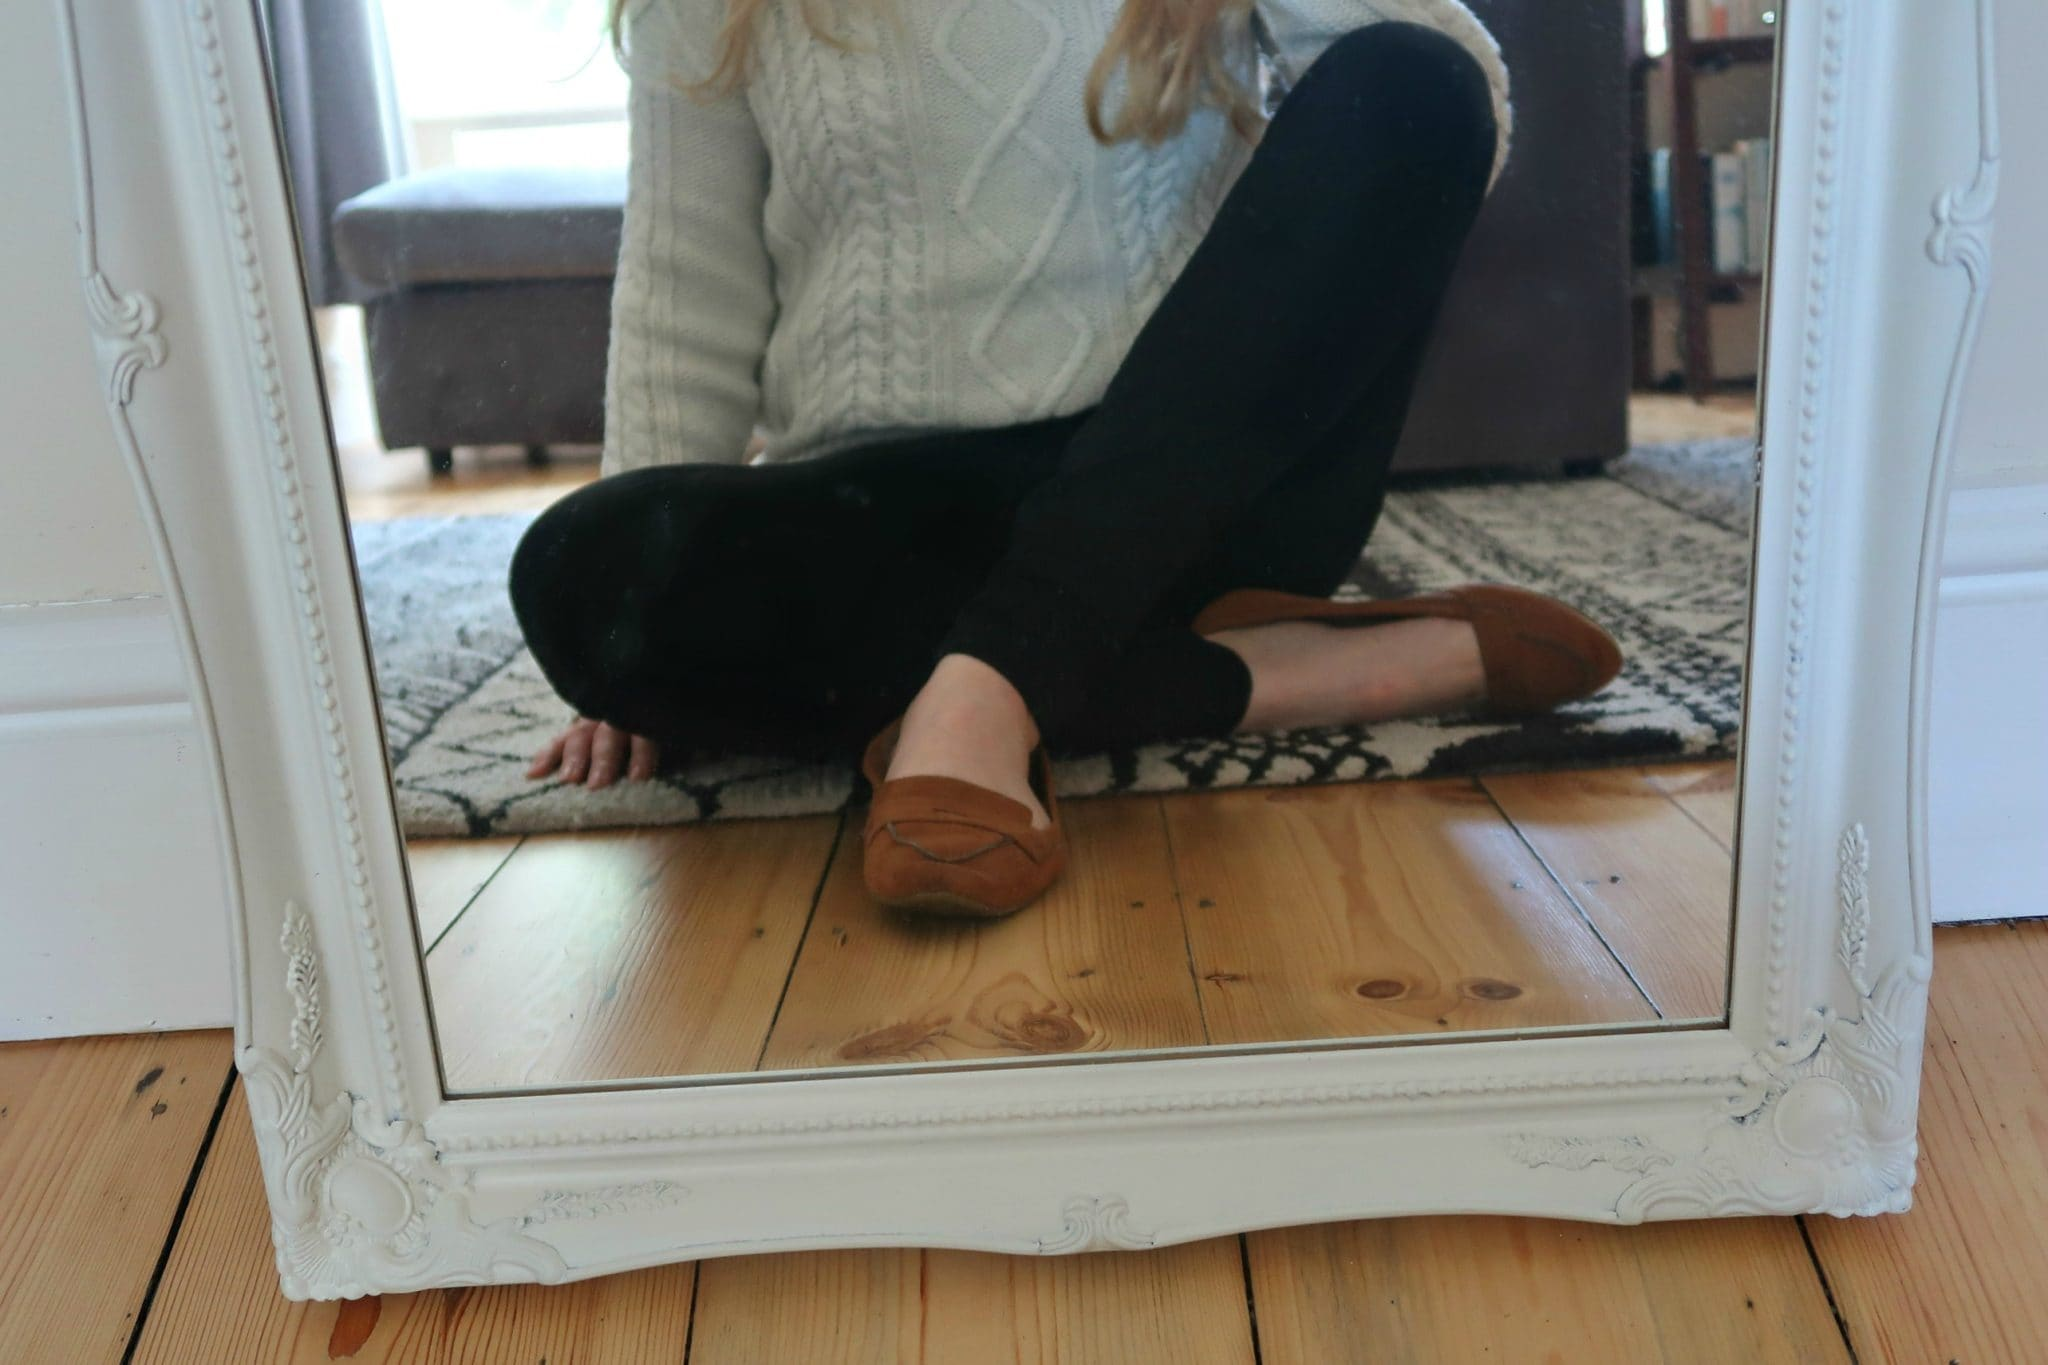 Do you want to Overhaul Your Wardrobe? White mirror with lady in black jeans sitting in the reflection